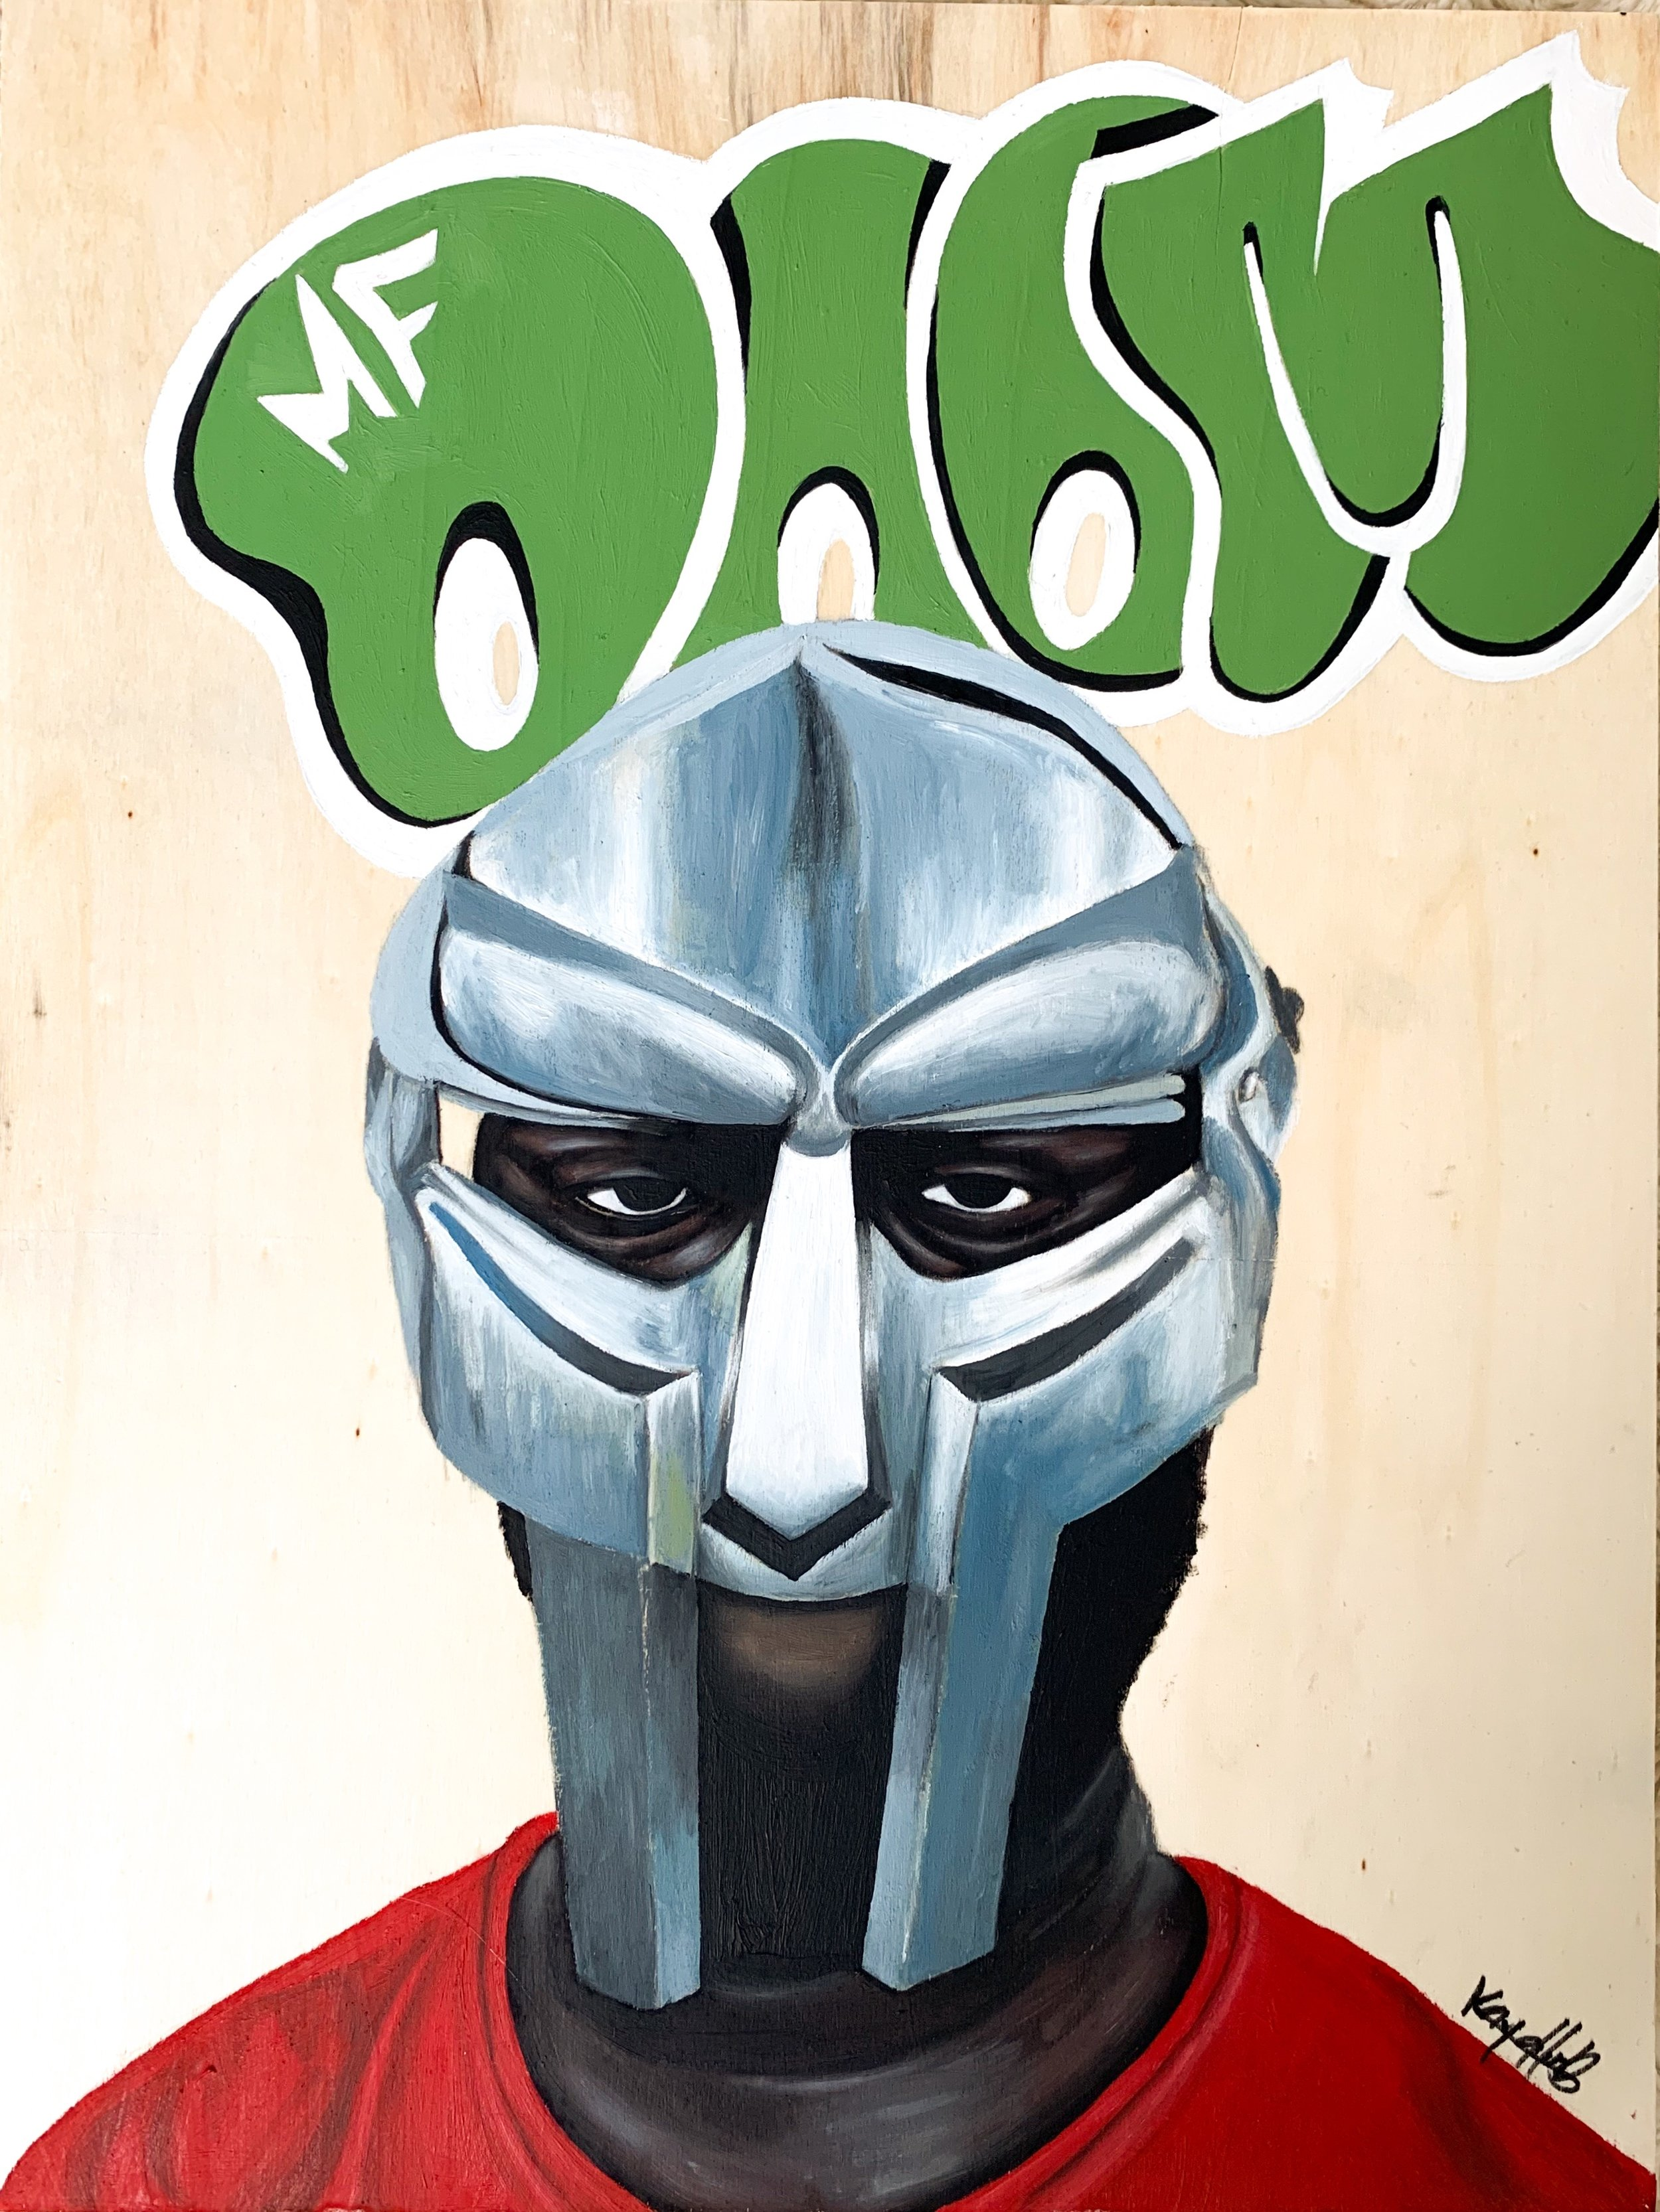 mf doom - Oils on panel11x14 inches2019SOLD